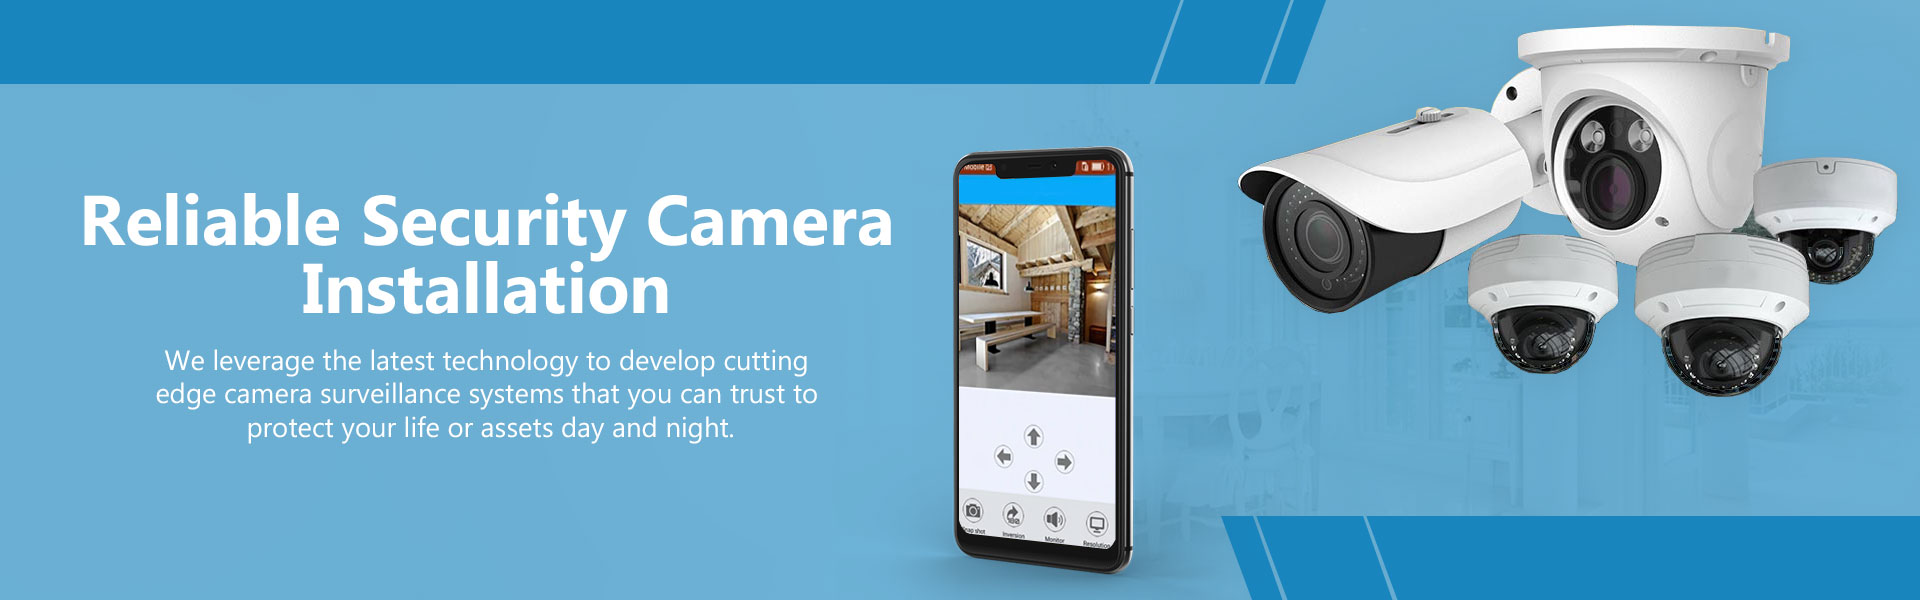 security camera installation orange county